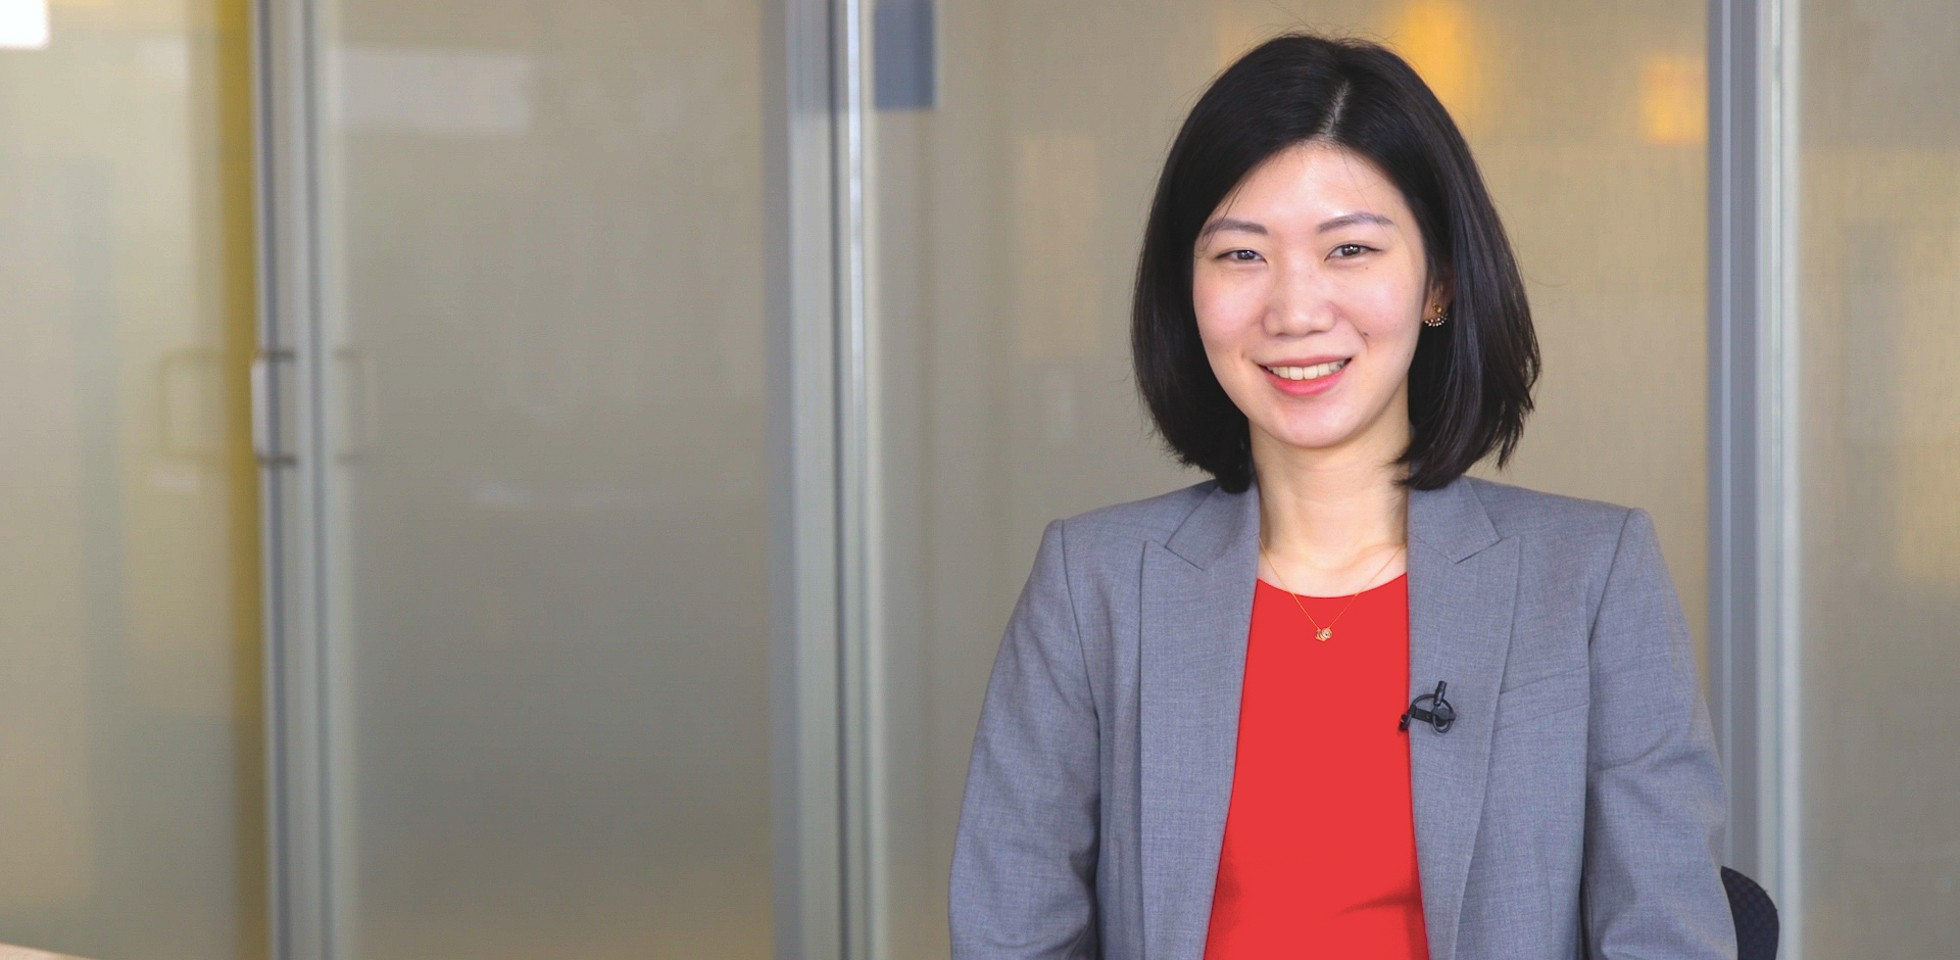 Xiaoxiao Tan, Client Executive, Vice President - Marsh & McLennan Companies Careers